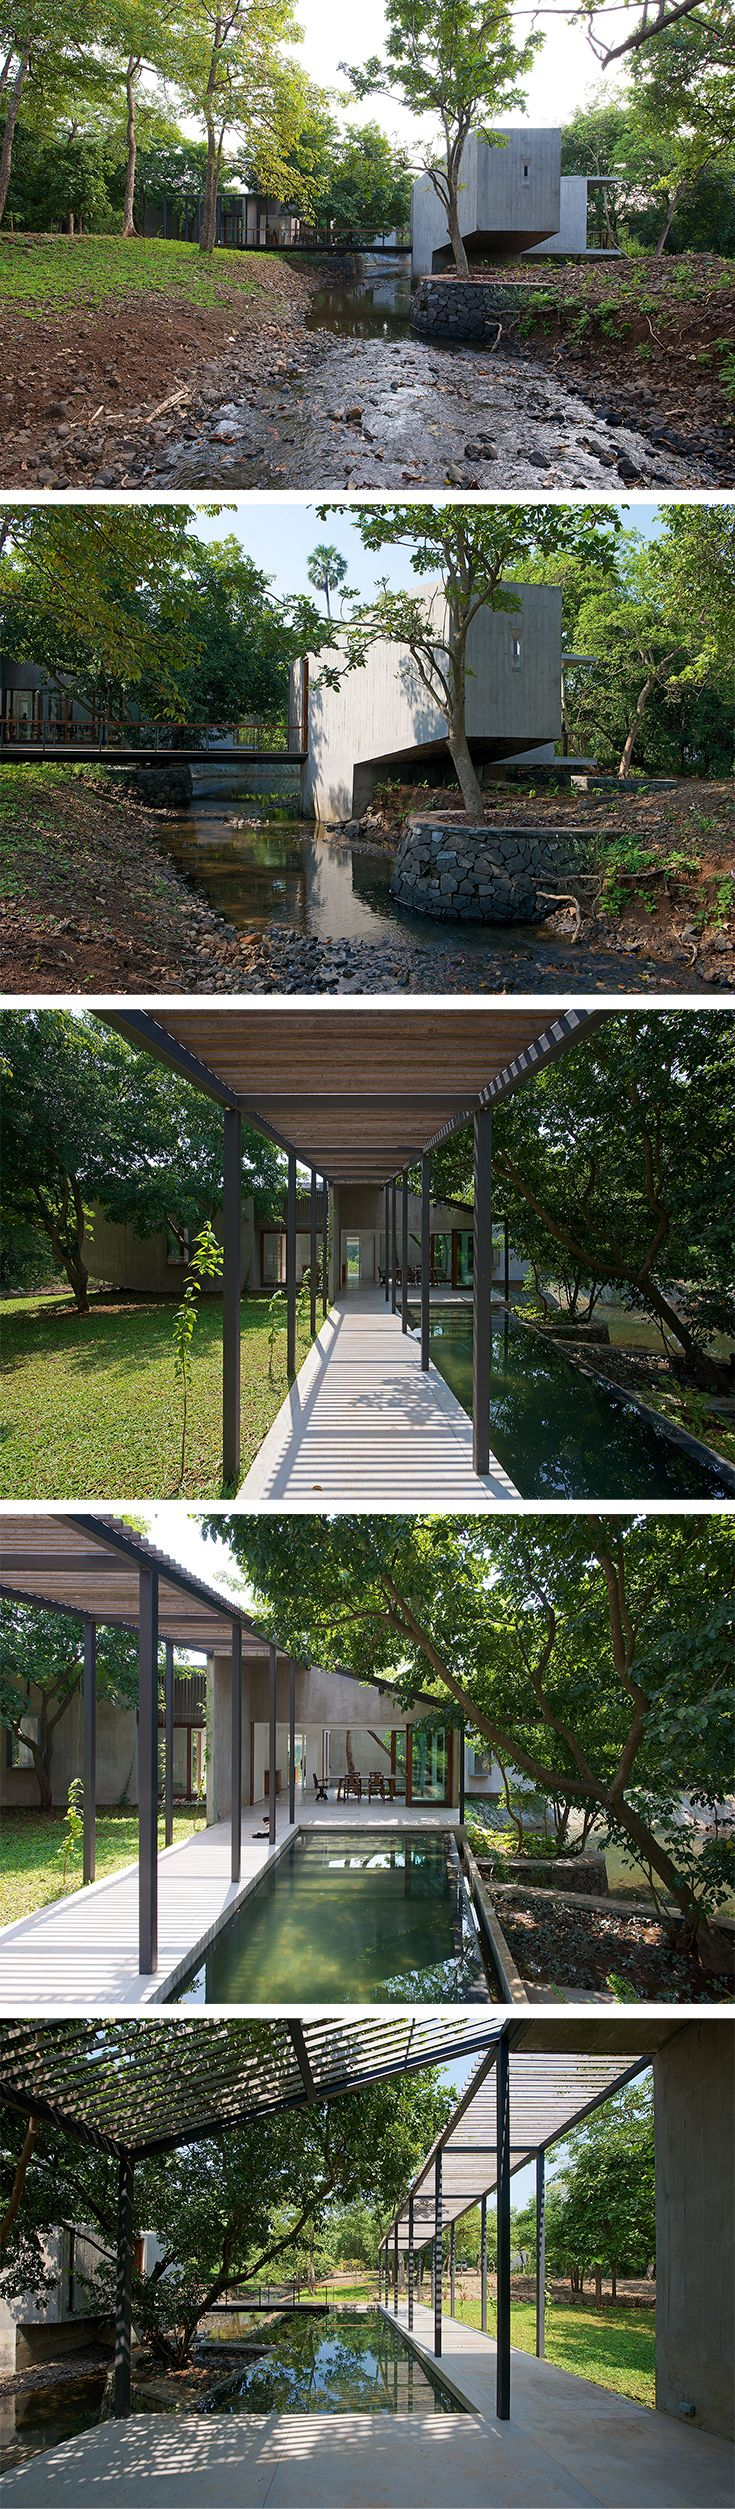 House on a Stream - The concrete house is situated in a Tropical Landscape with a seasonal stream running through it